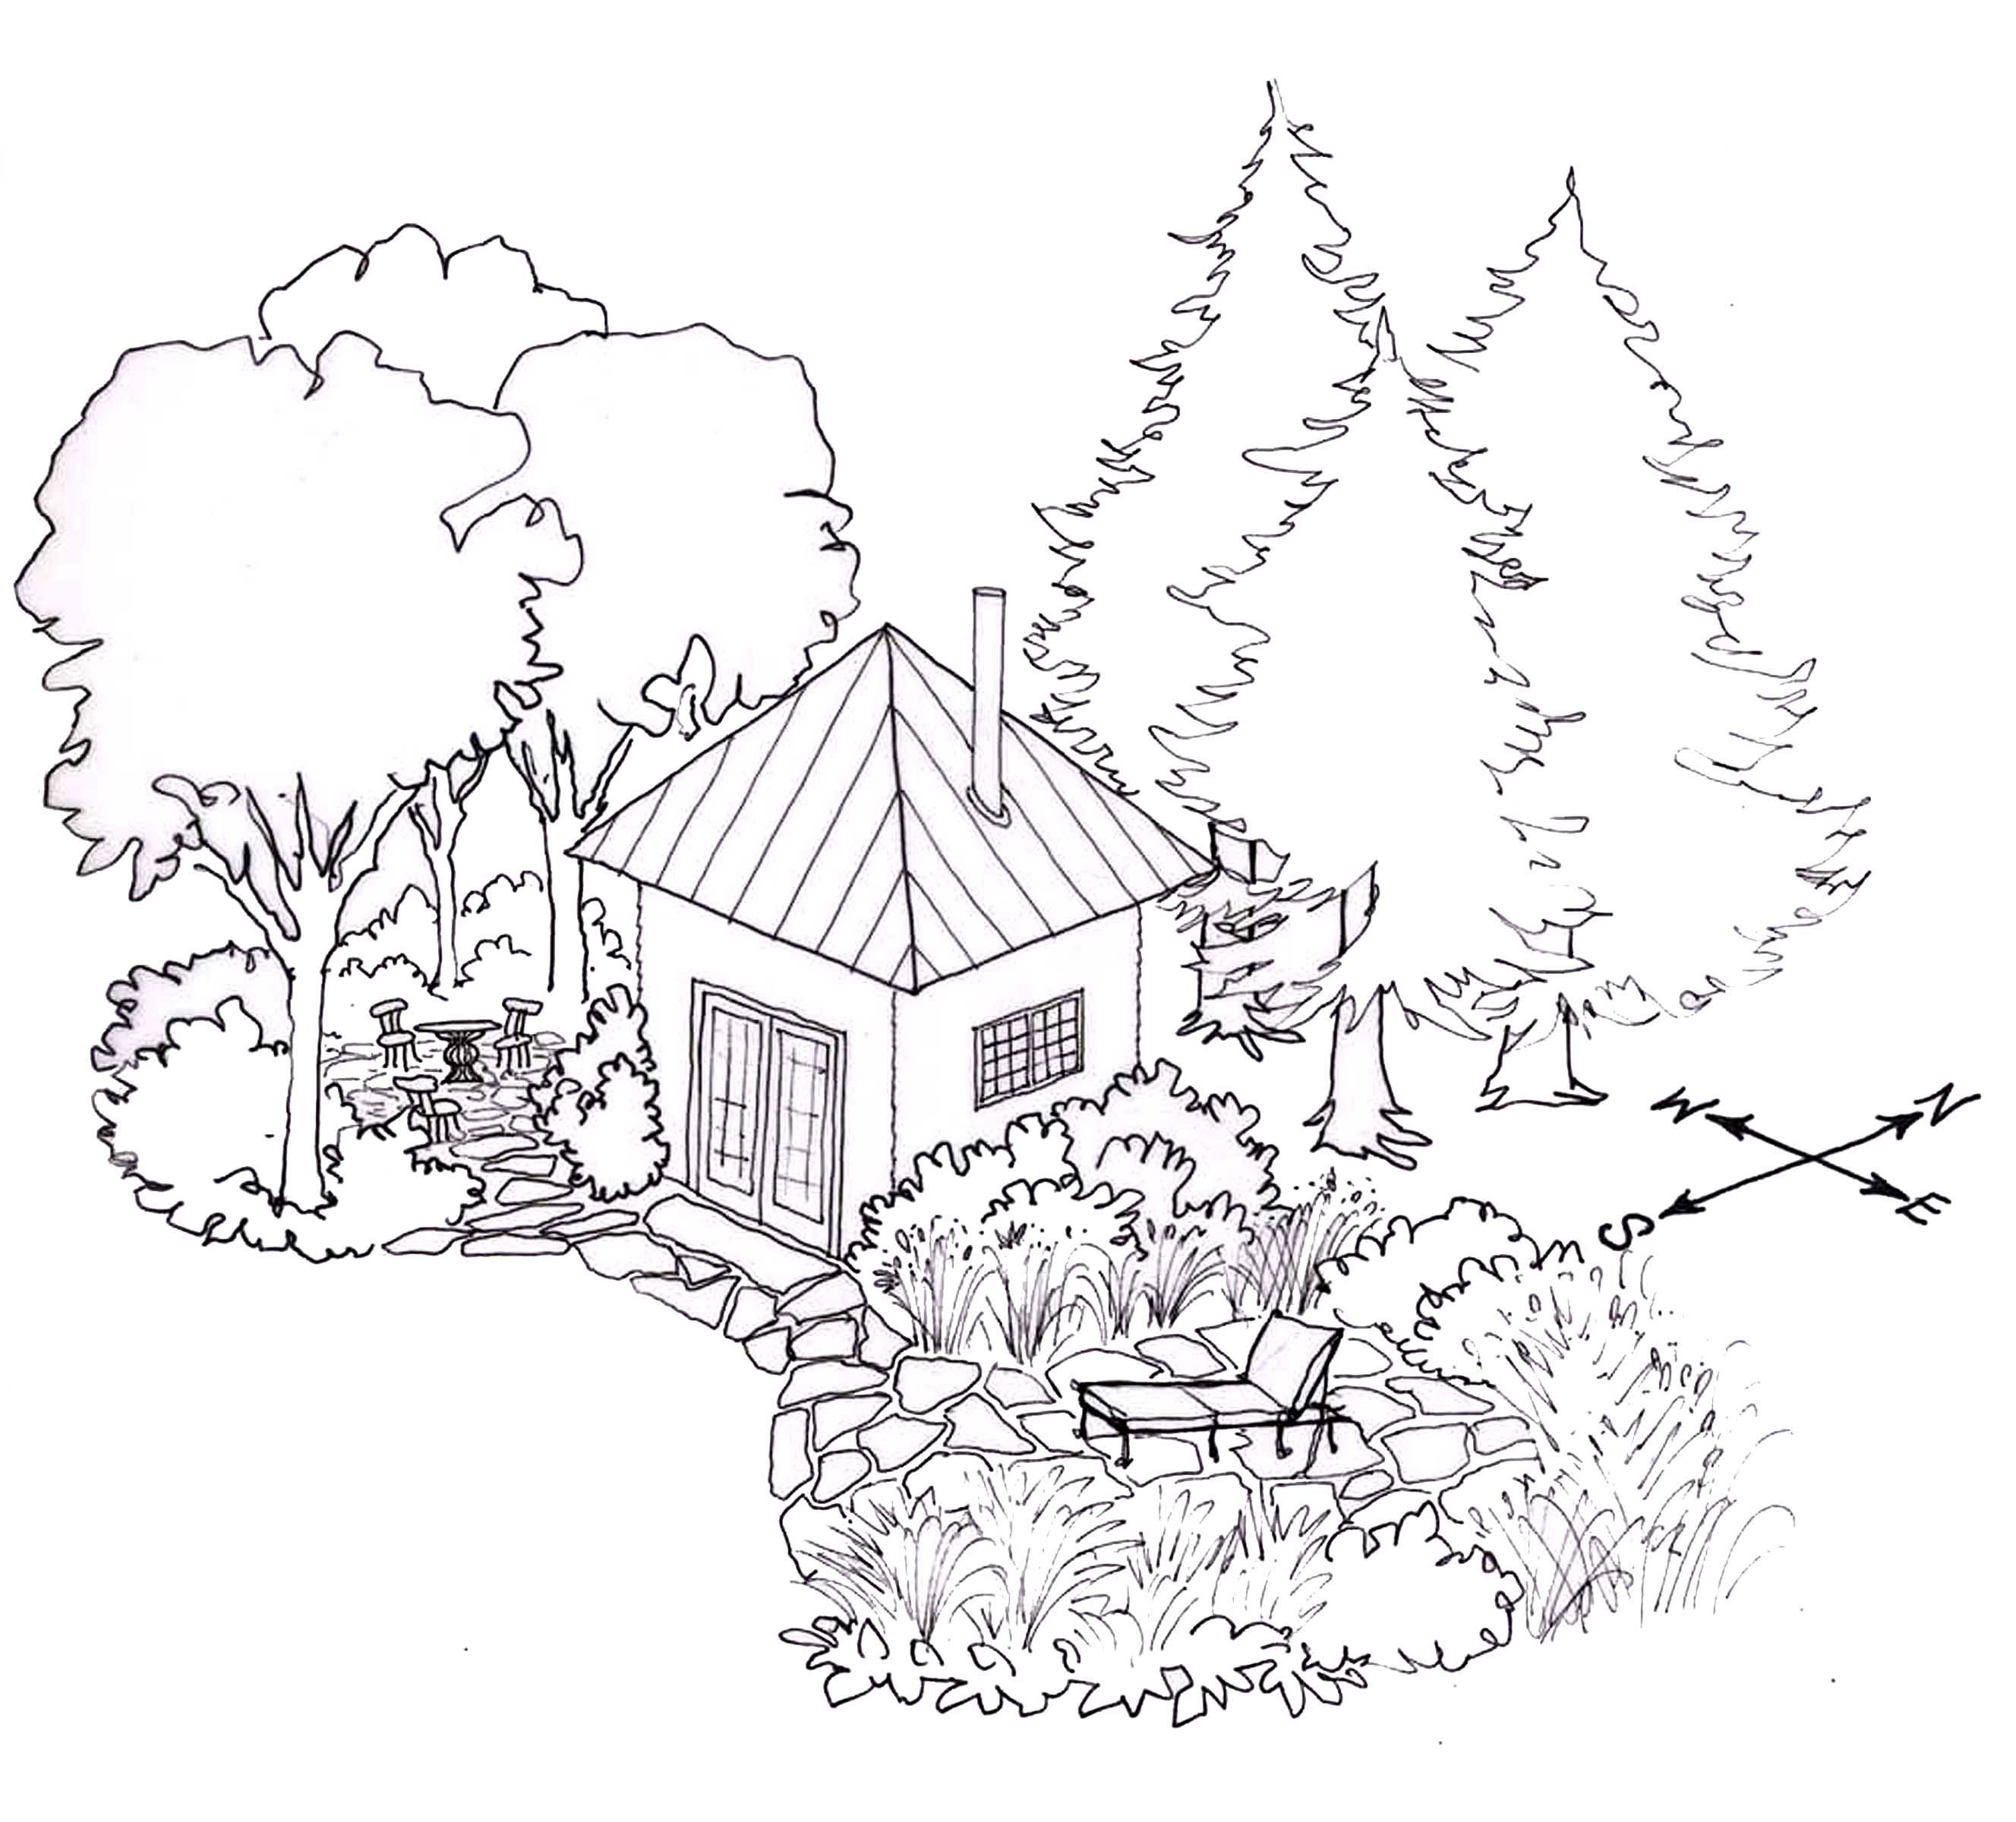 1242x1050 Free Printable Animal Habitat Coloring Pages 2655x2400 Julie Moir Messervy Design Studio Tips Using Trees In The